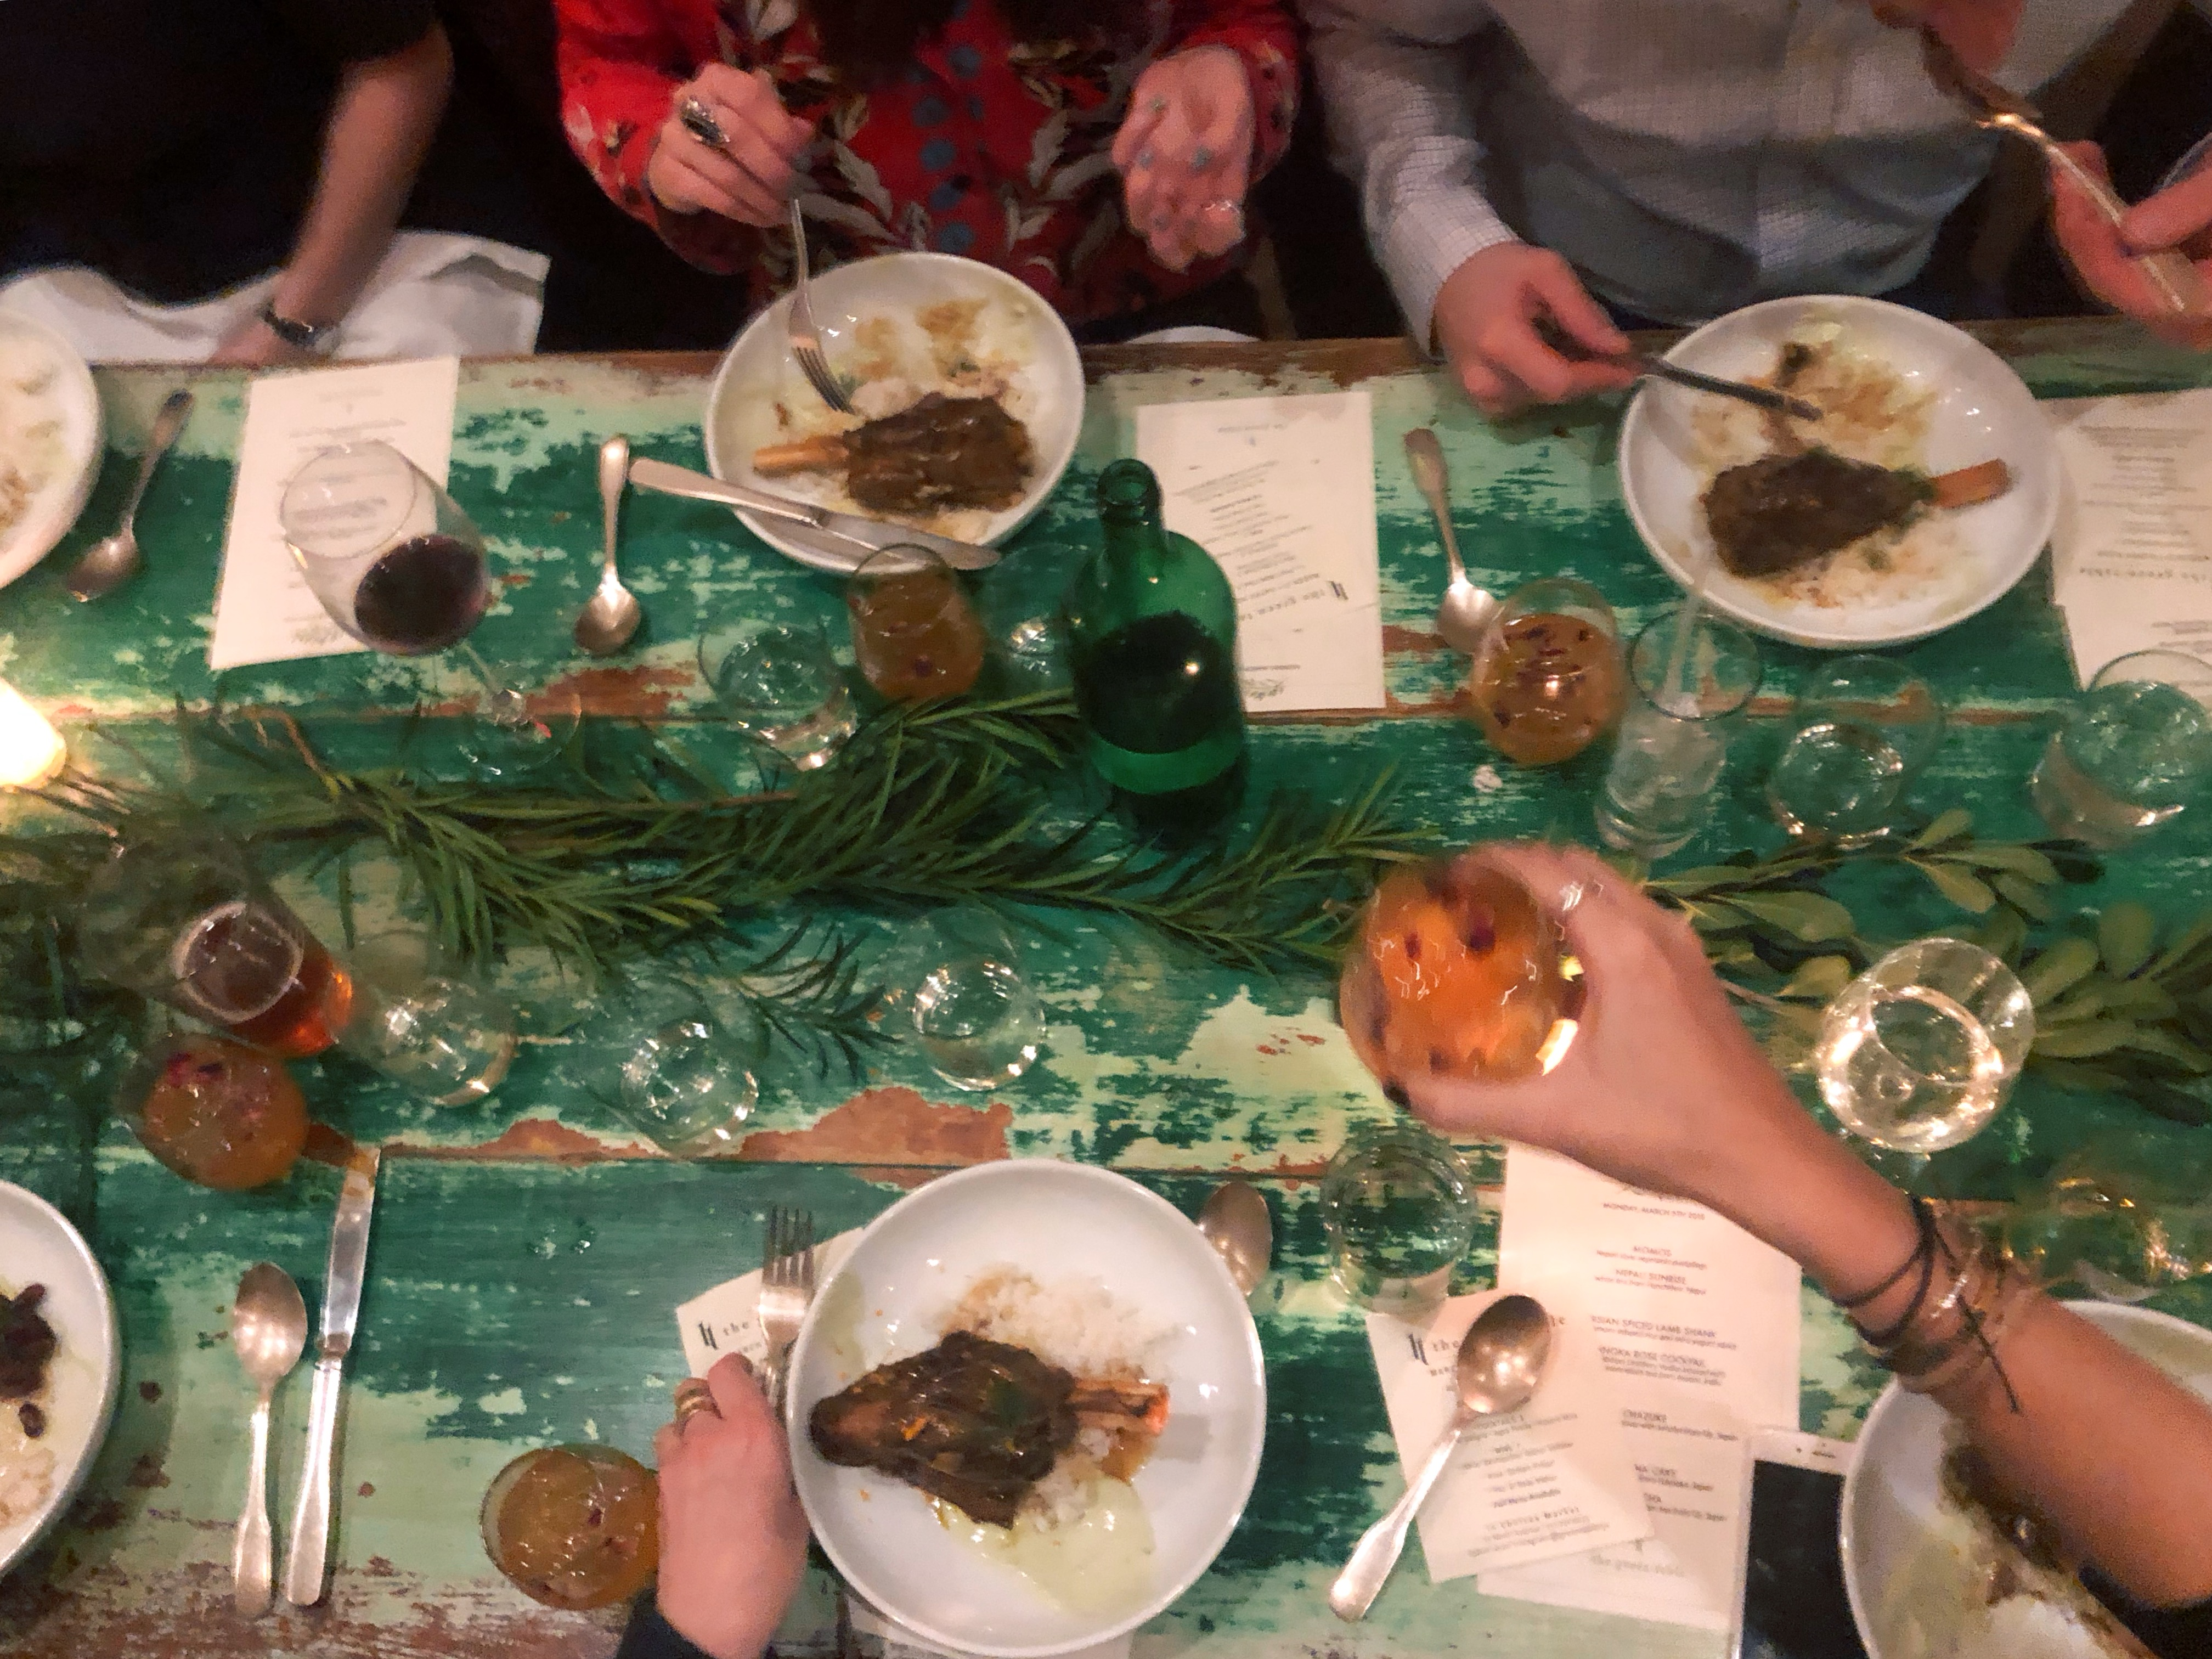 Flatlay photo of rustic green, wooden table with plates of food and diners around it.